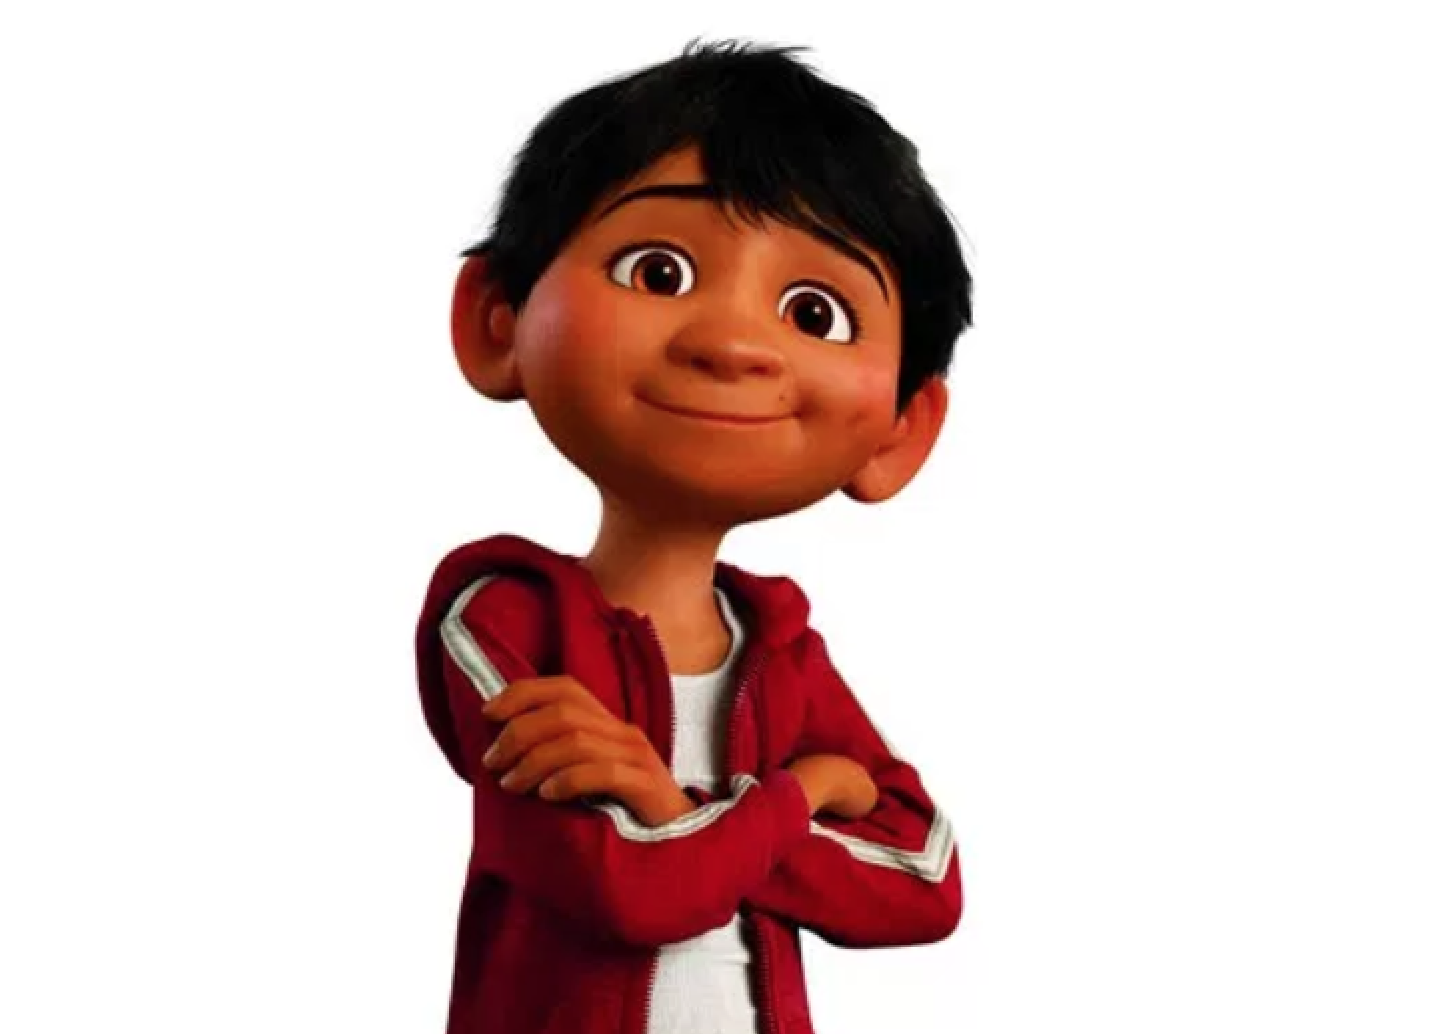 Miguel Rivera from Coco.